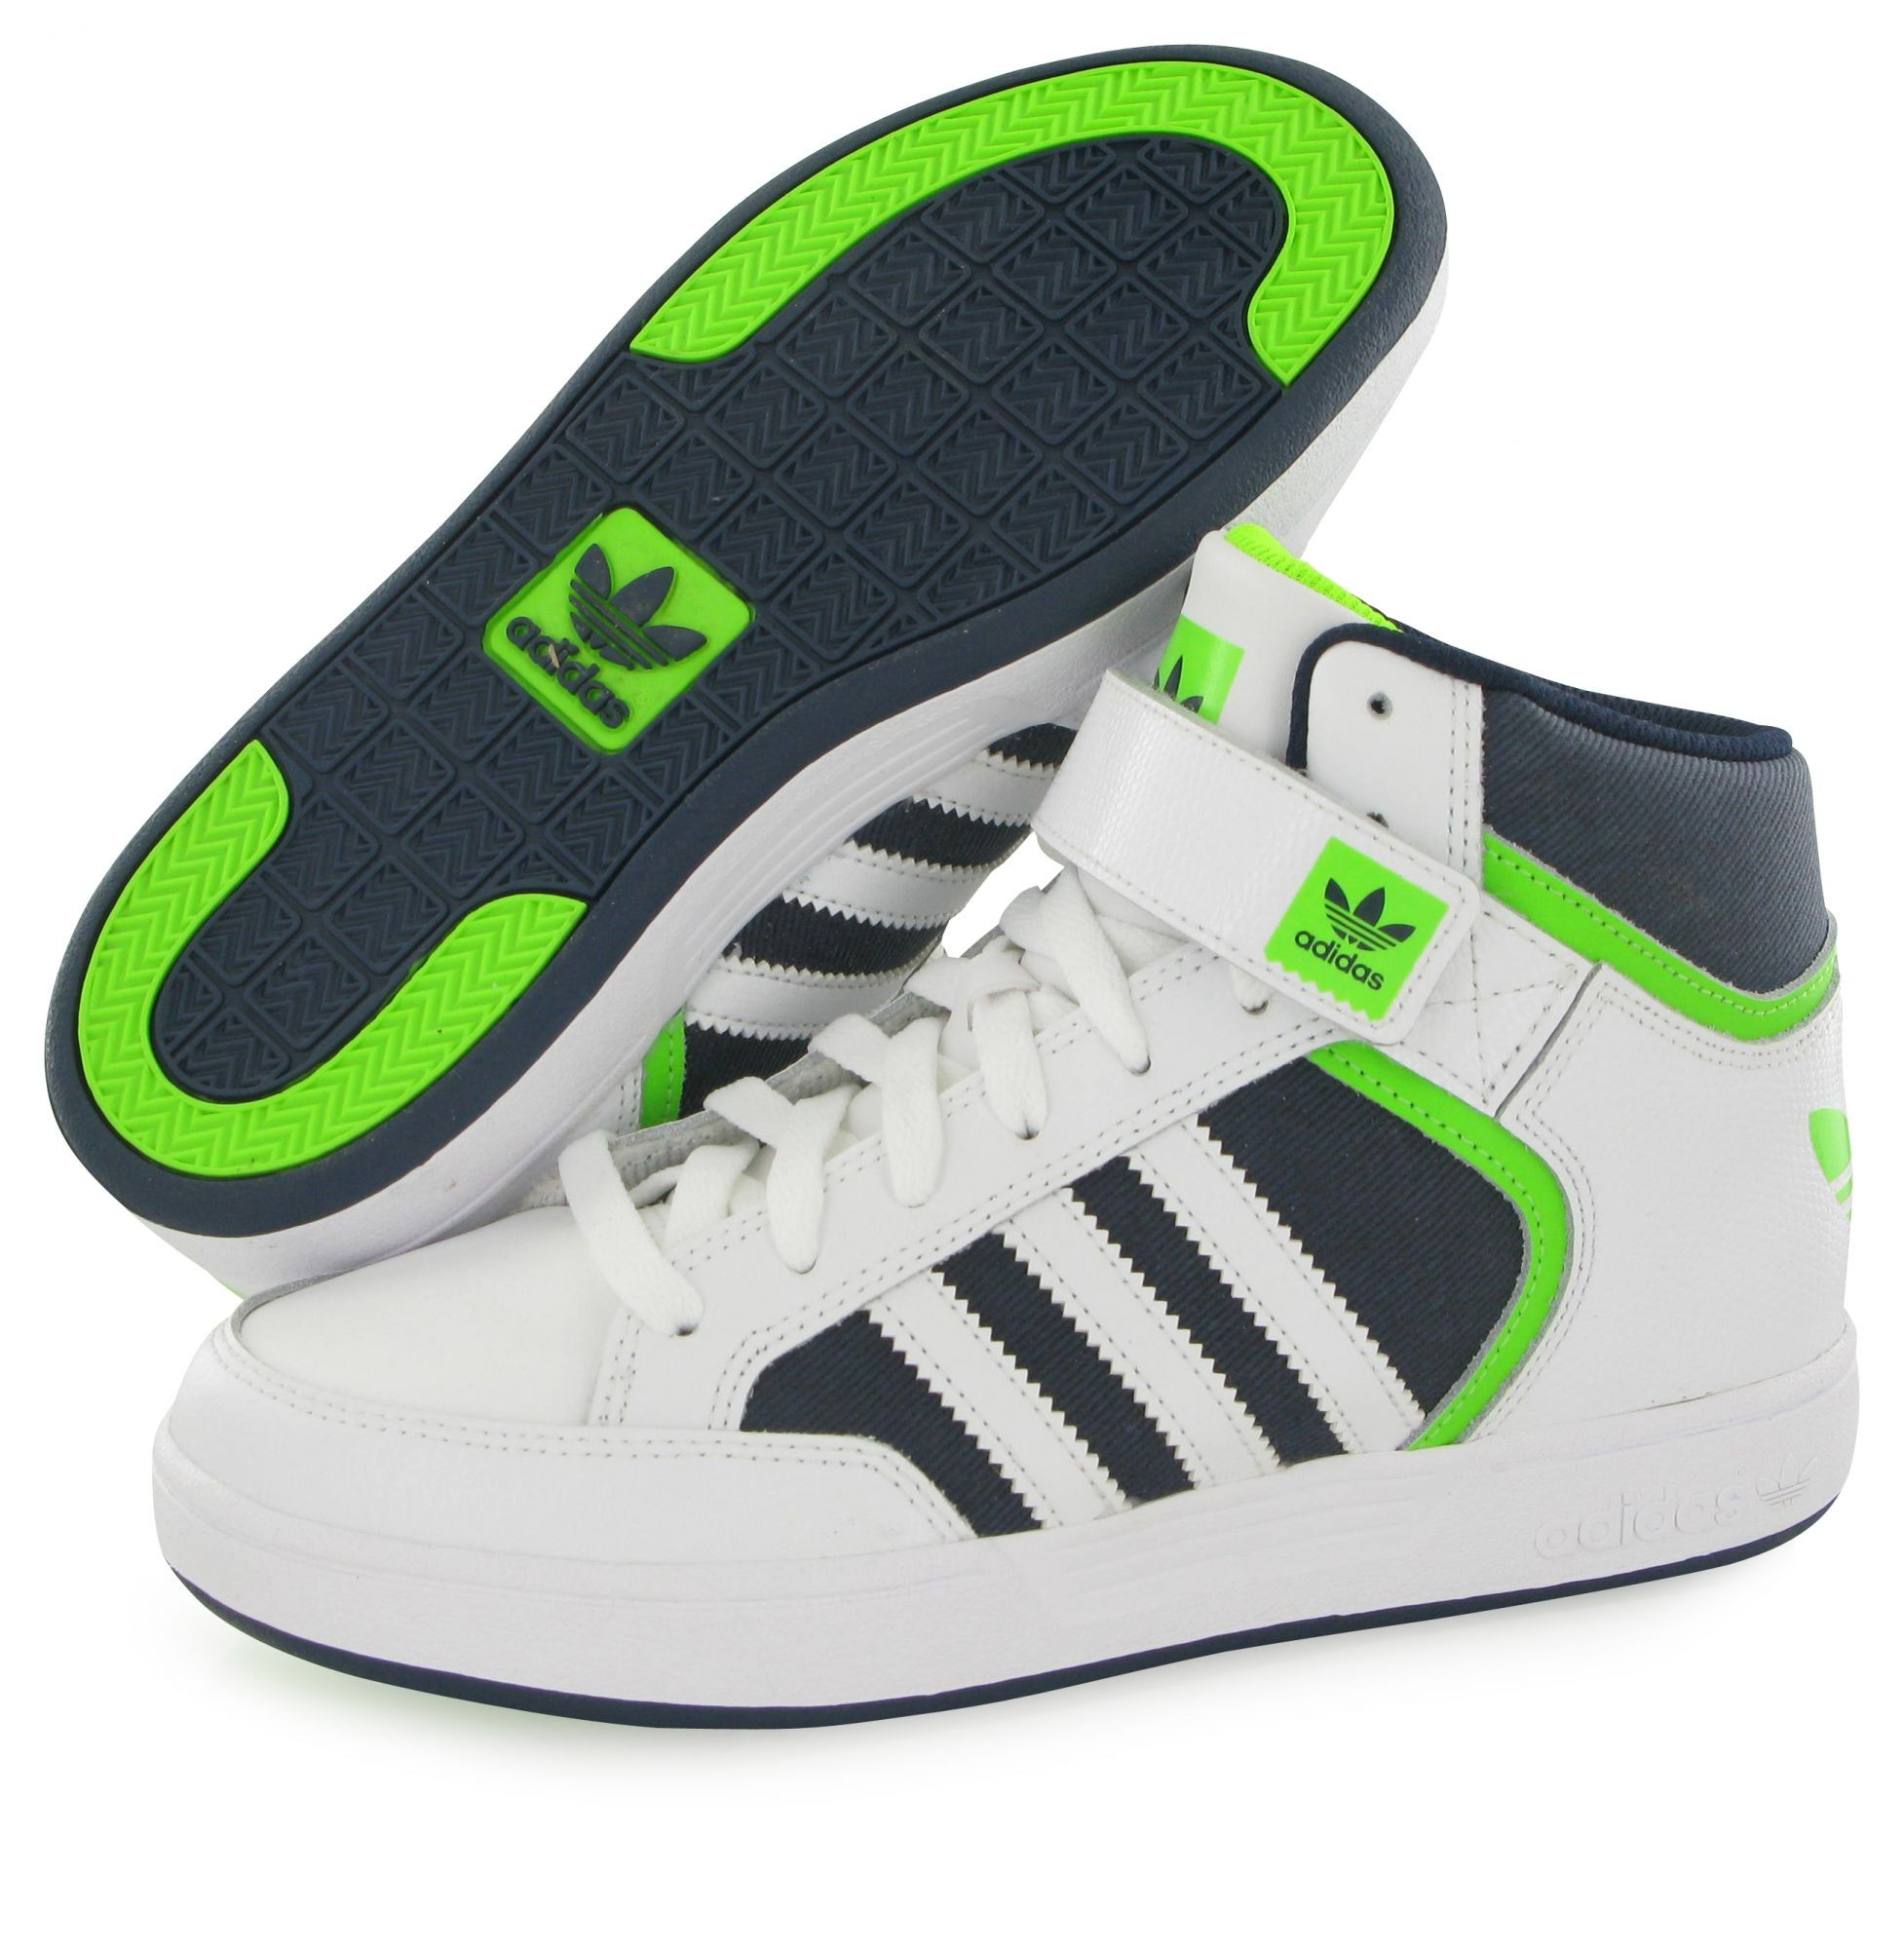 buty adidas Varial Mid J B27430 timsport.pl 0ce220a1bfb